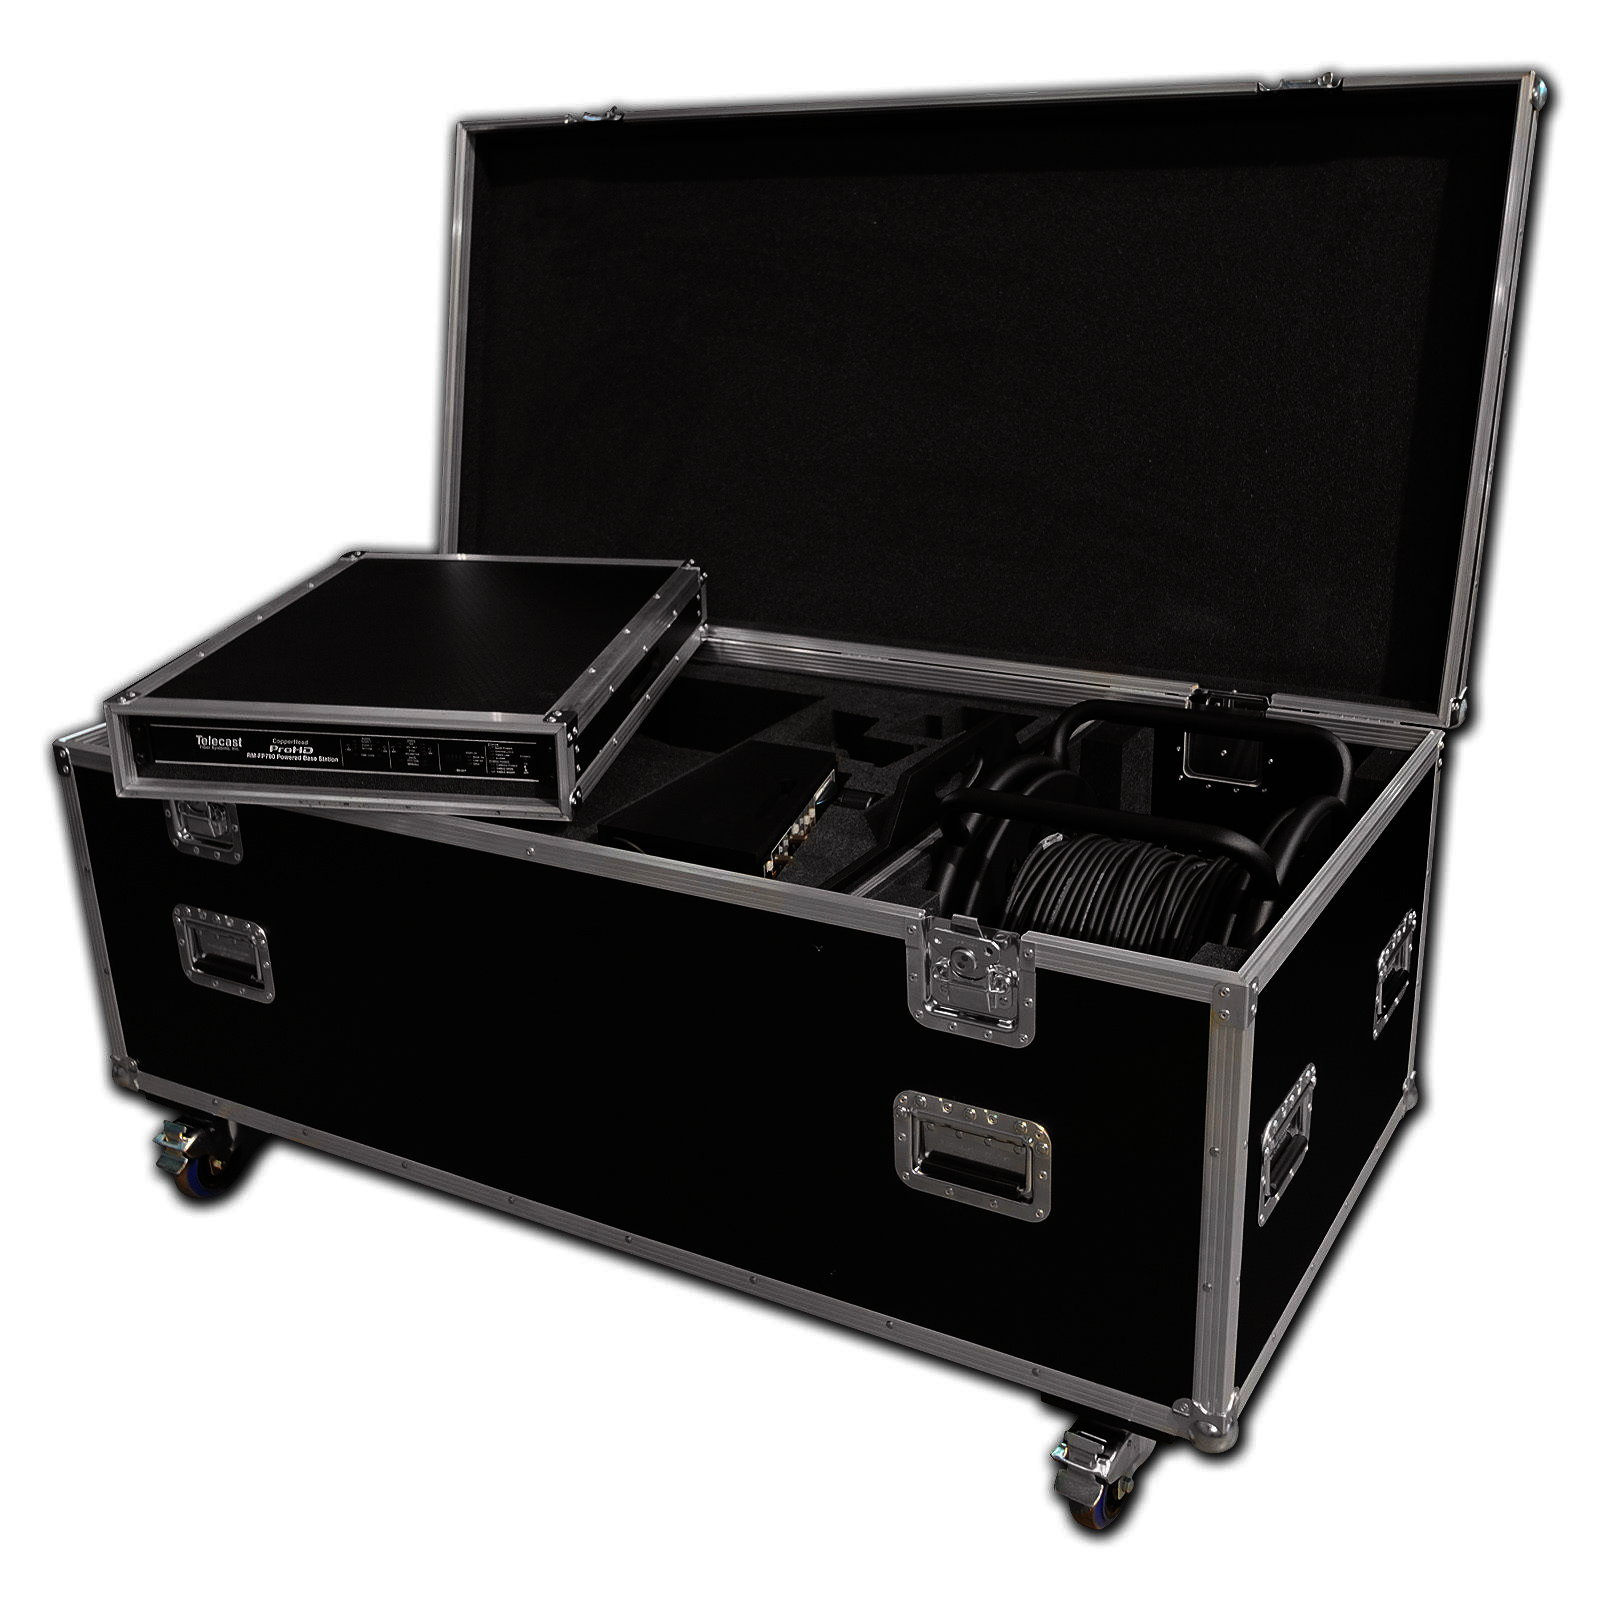 custom camcorder flight case with lens space cable drum. Black Bedroom Furniture Sets. Home Design Ideas